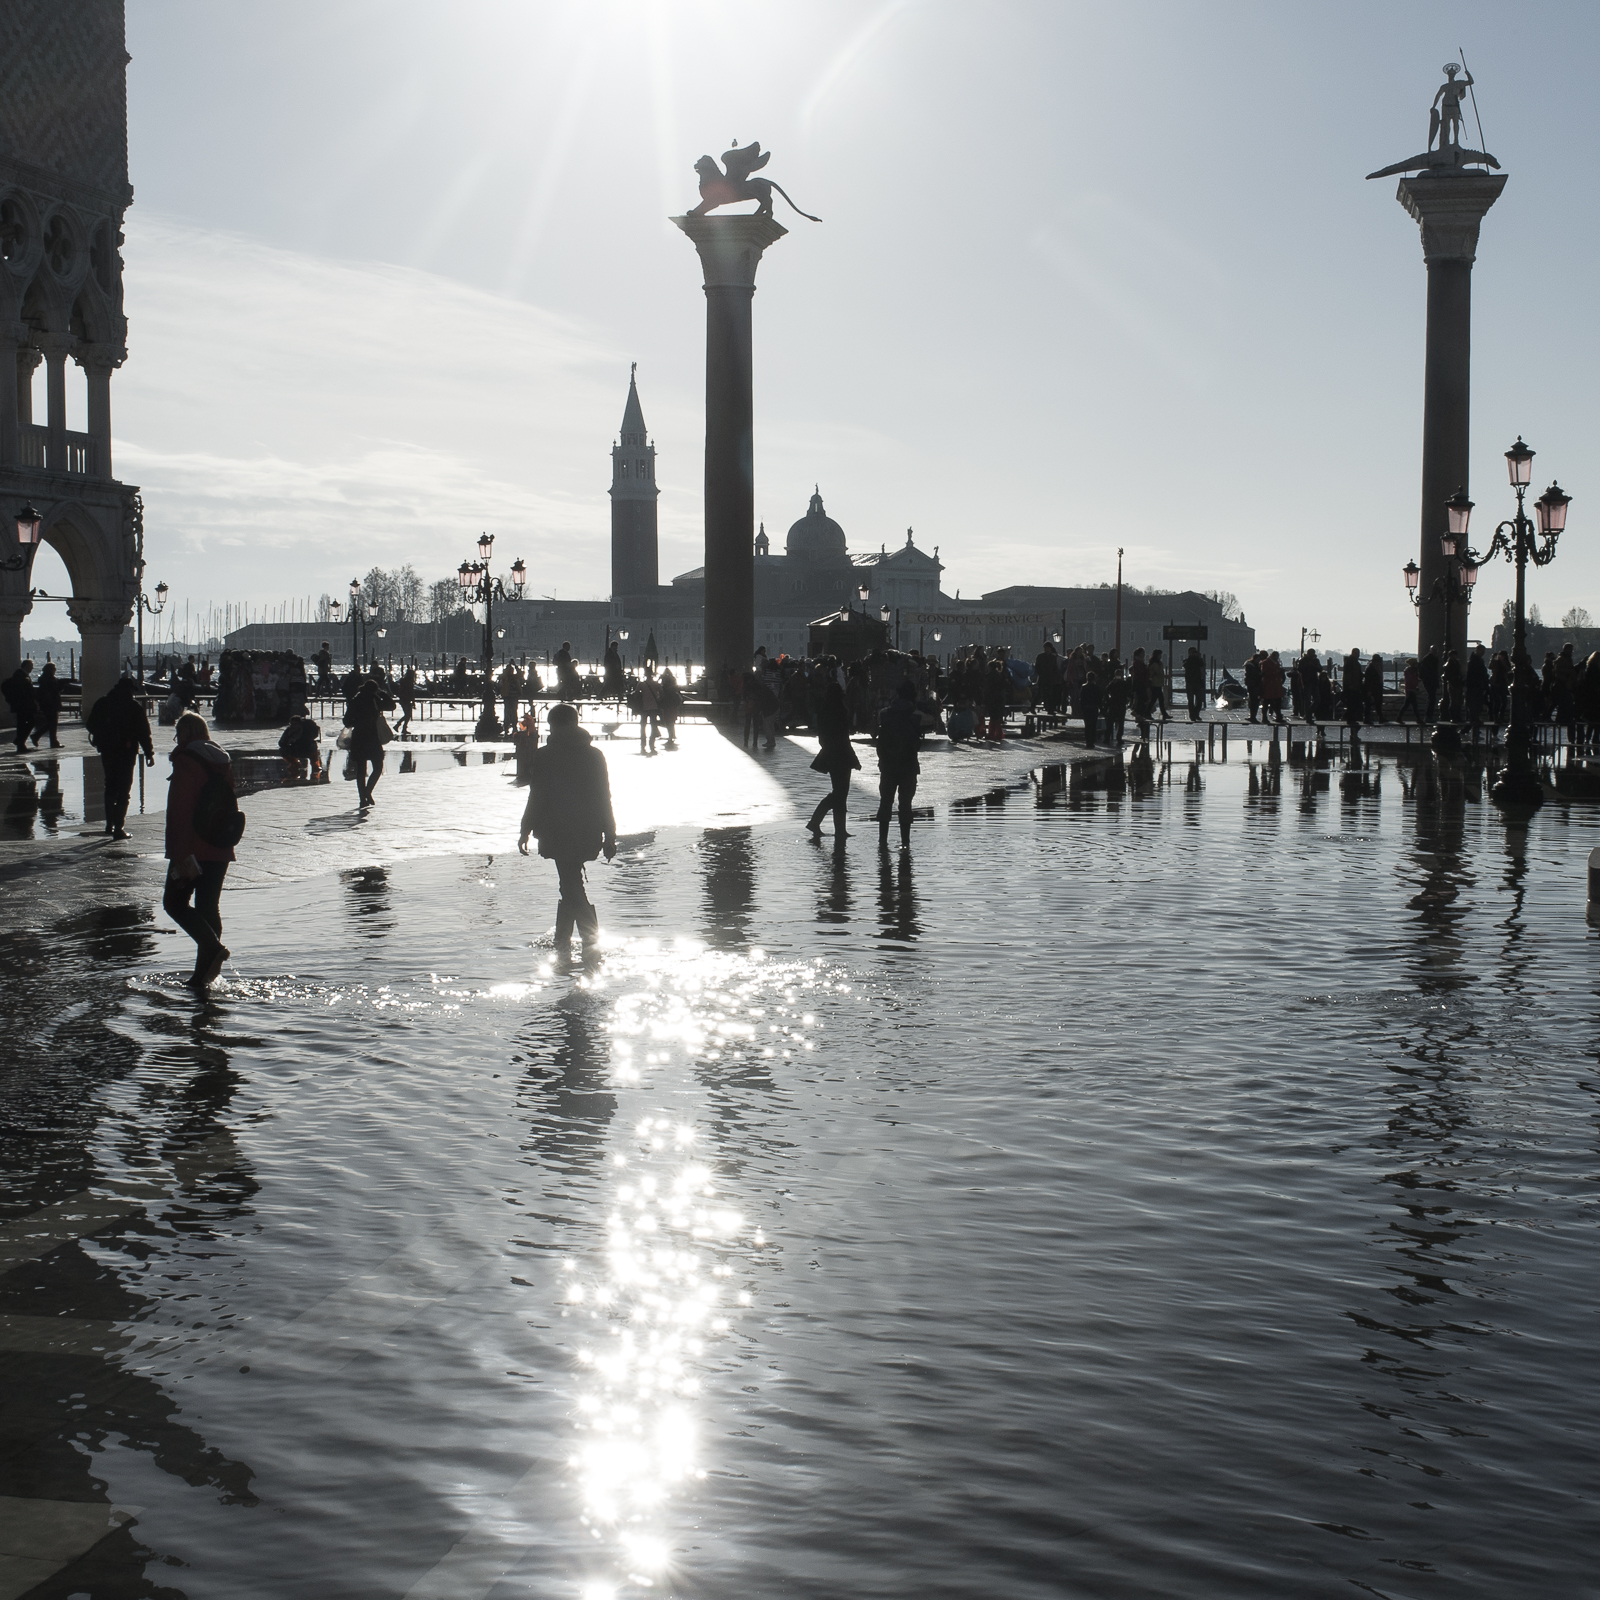 Aqua Alta on Piazza San Marco